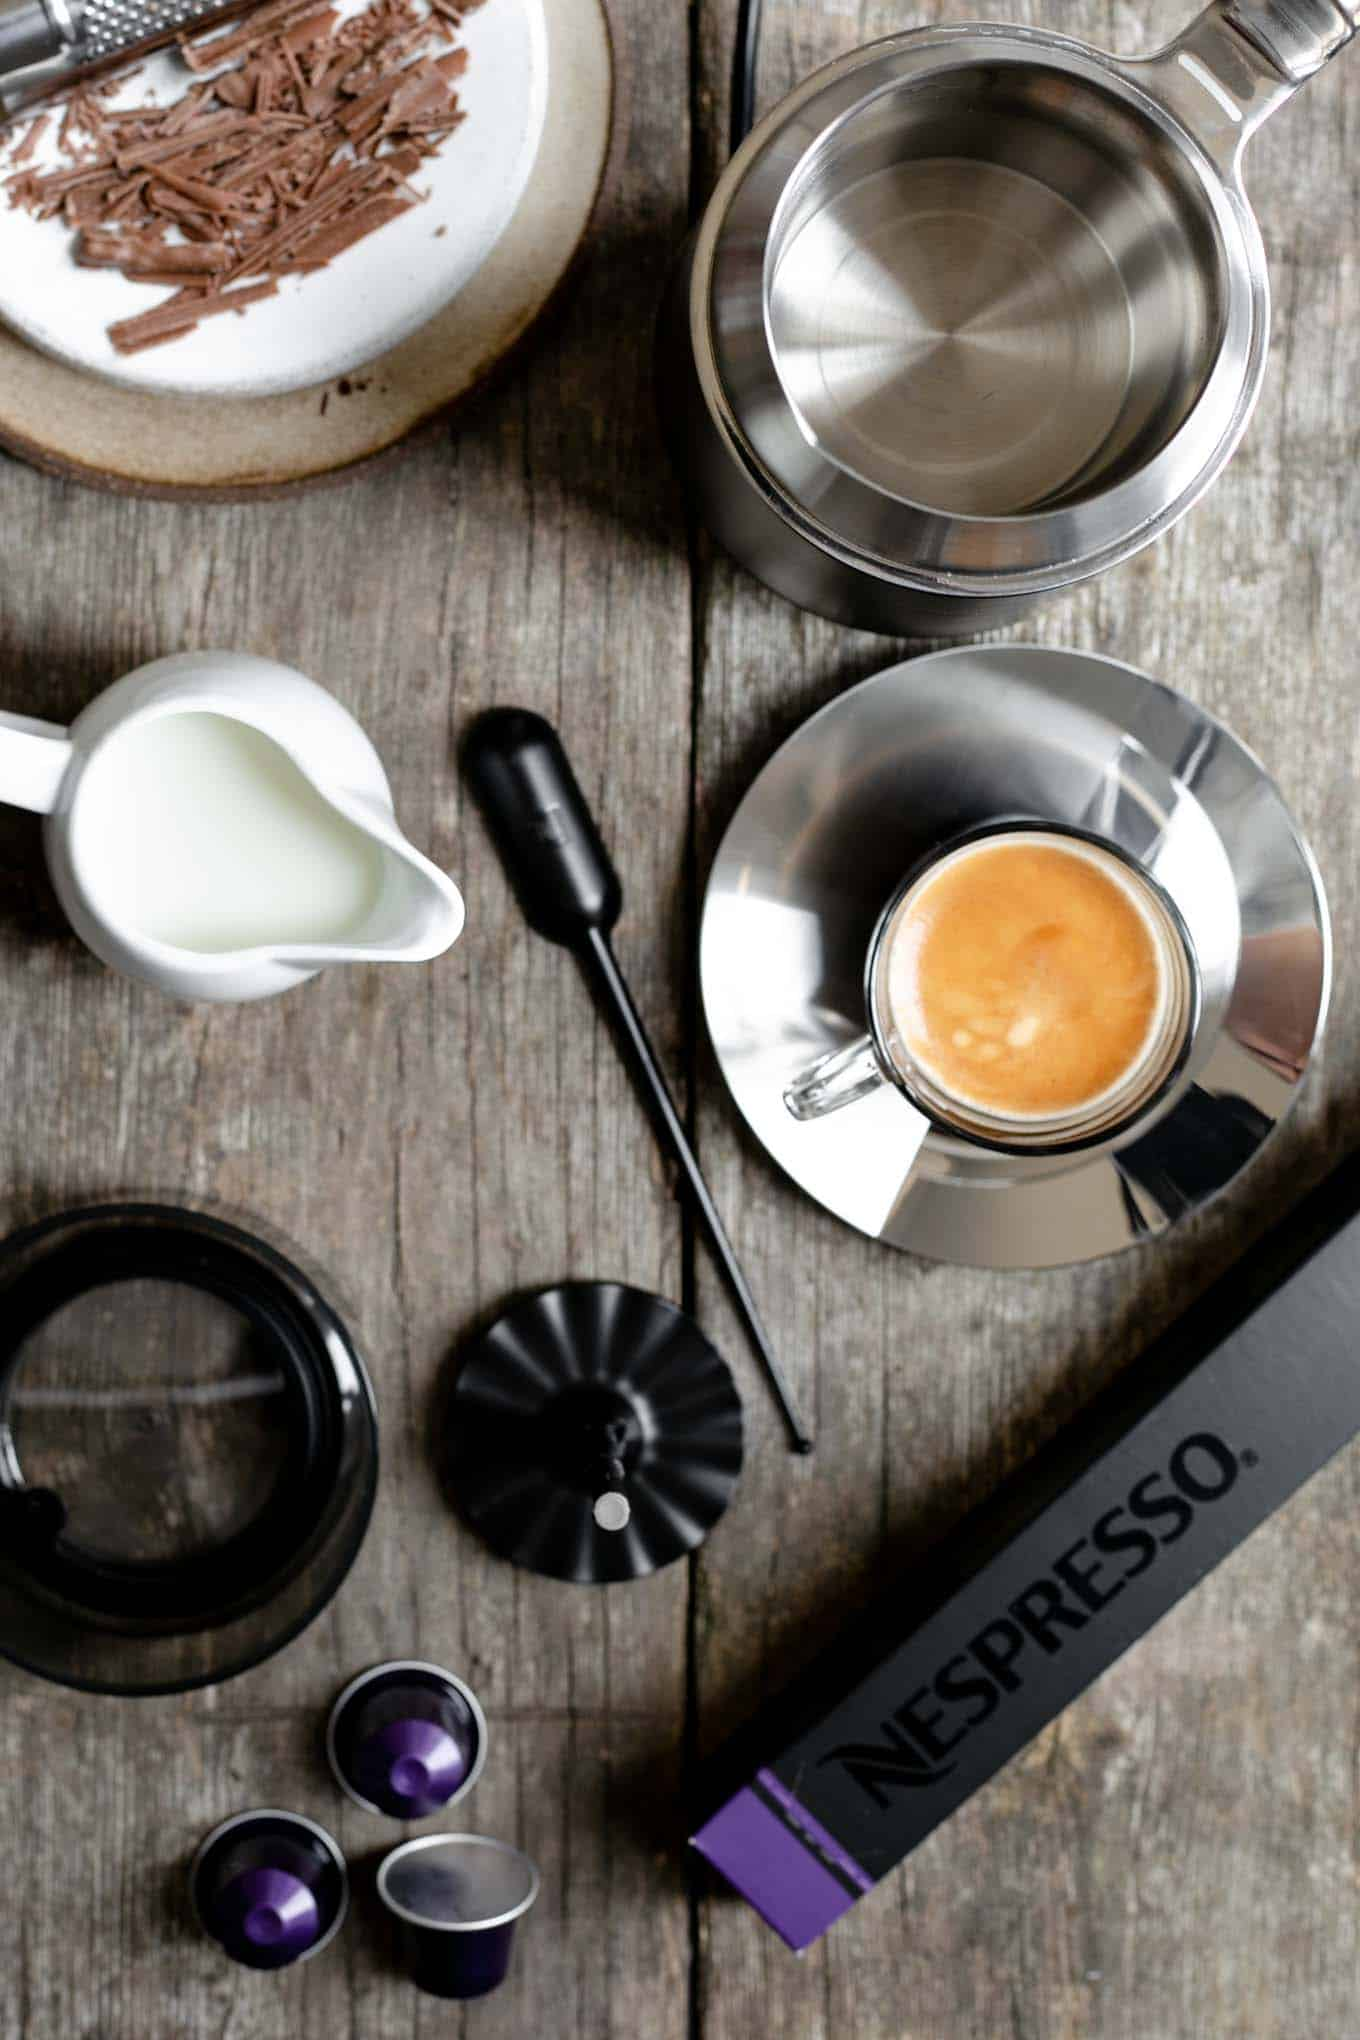 Nespresso Barista coffee recipes #coffee #icednitro #cafeviennois | via @annabanana.co